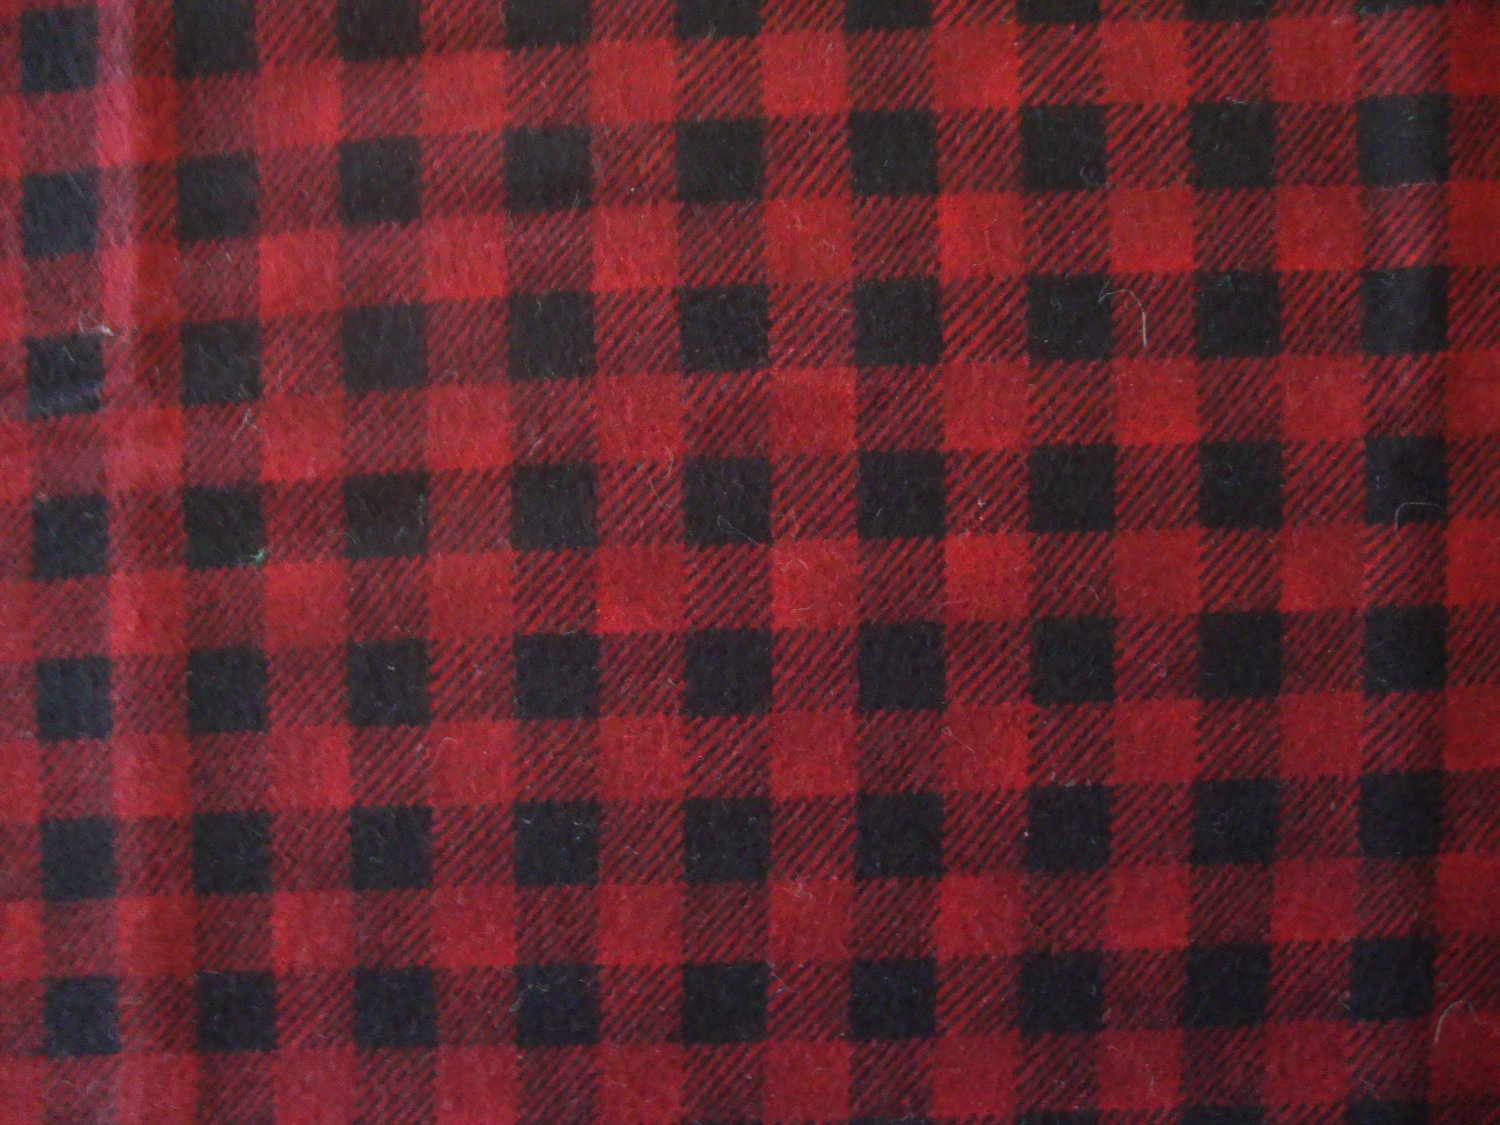 1 Yard Red & Black Plaid Cotton Flannel Fabric Bolt End by Debbie Mumm SSI